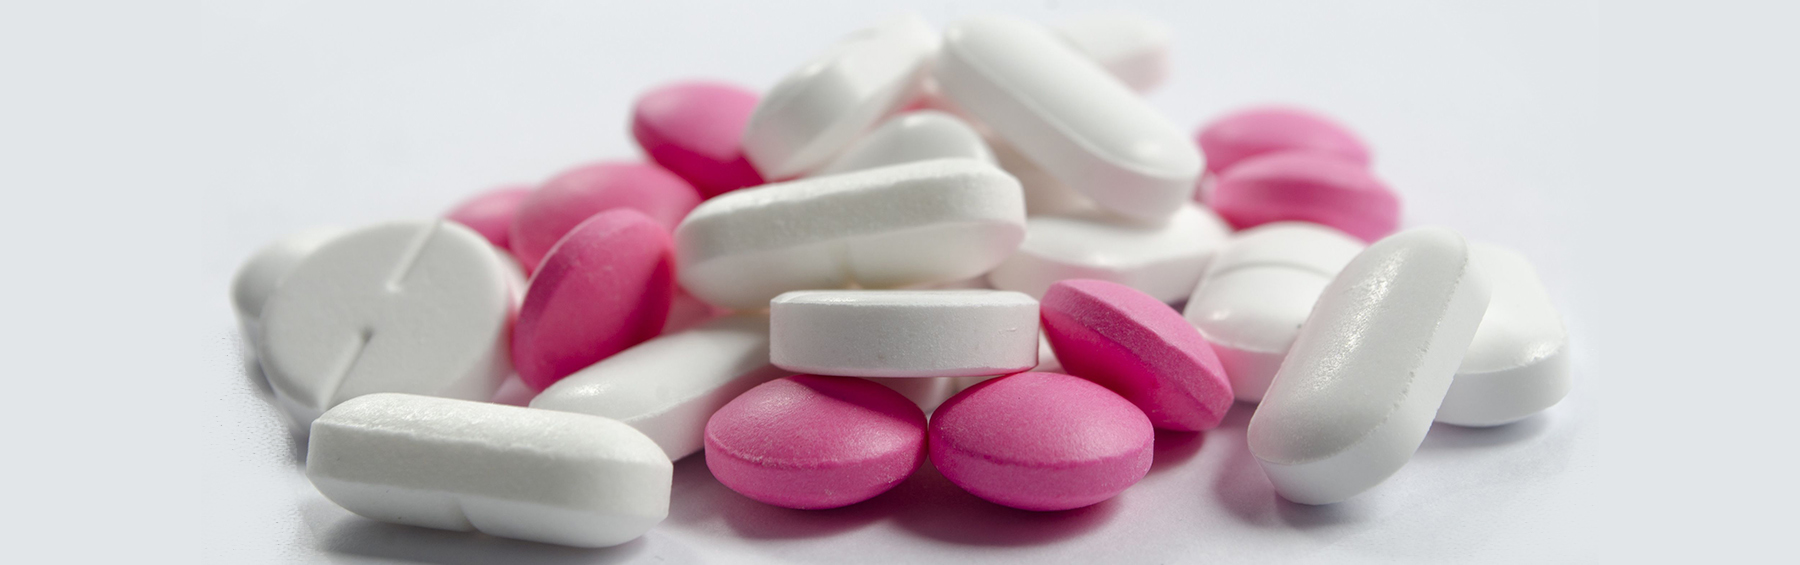 Can the overuse of medication cause chronic migraines?